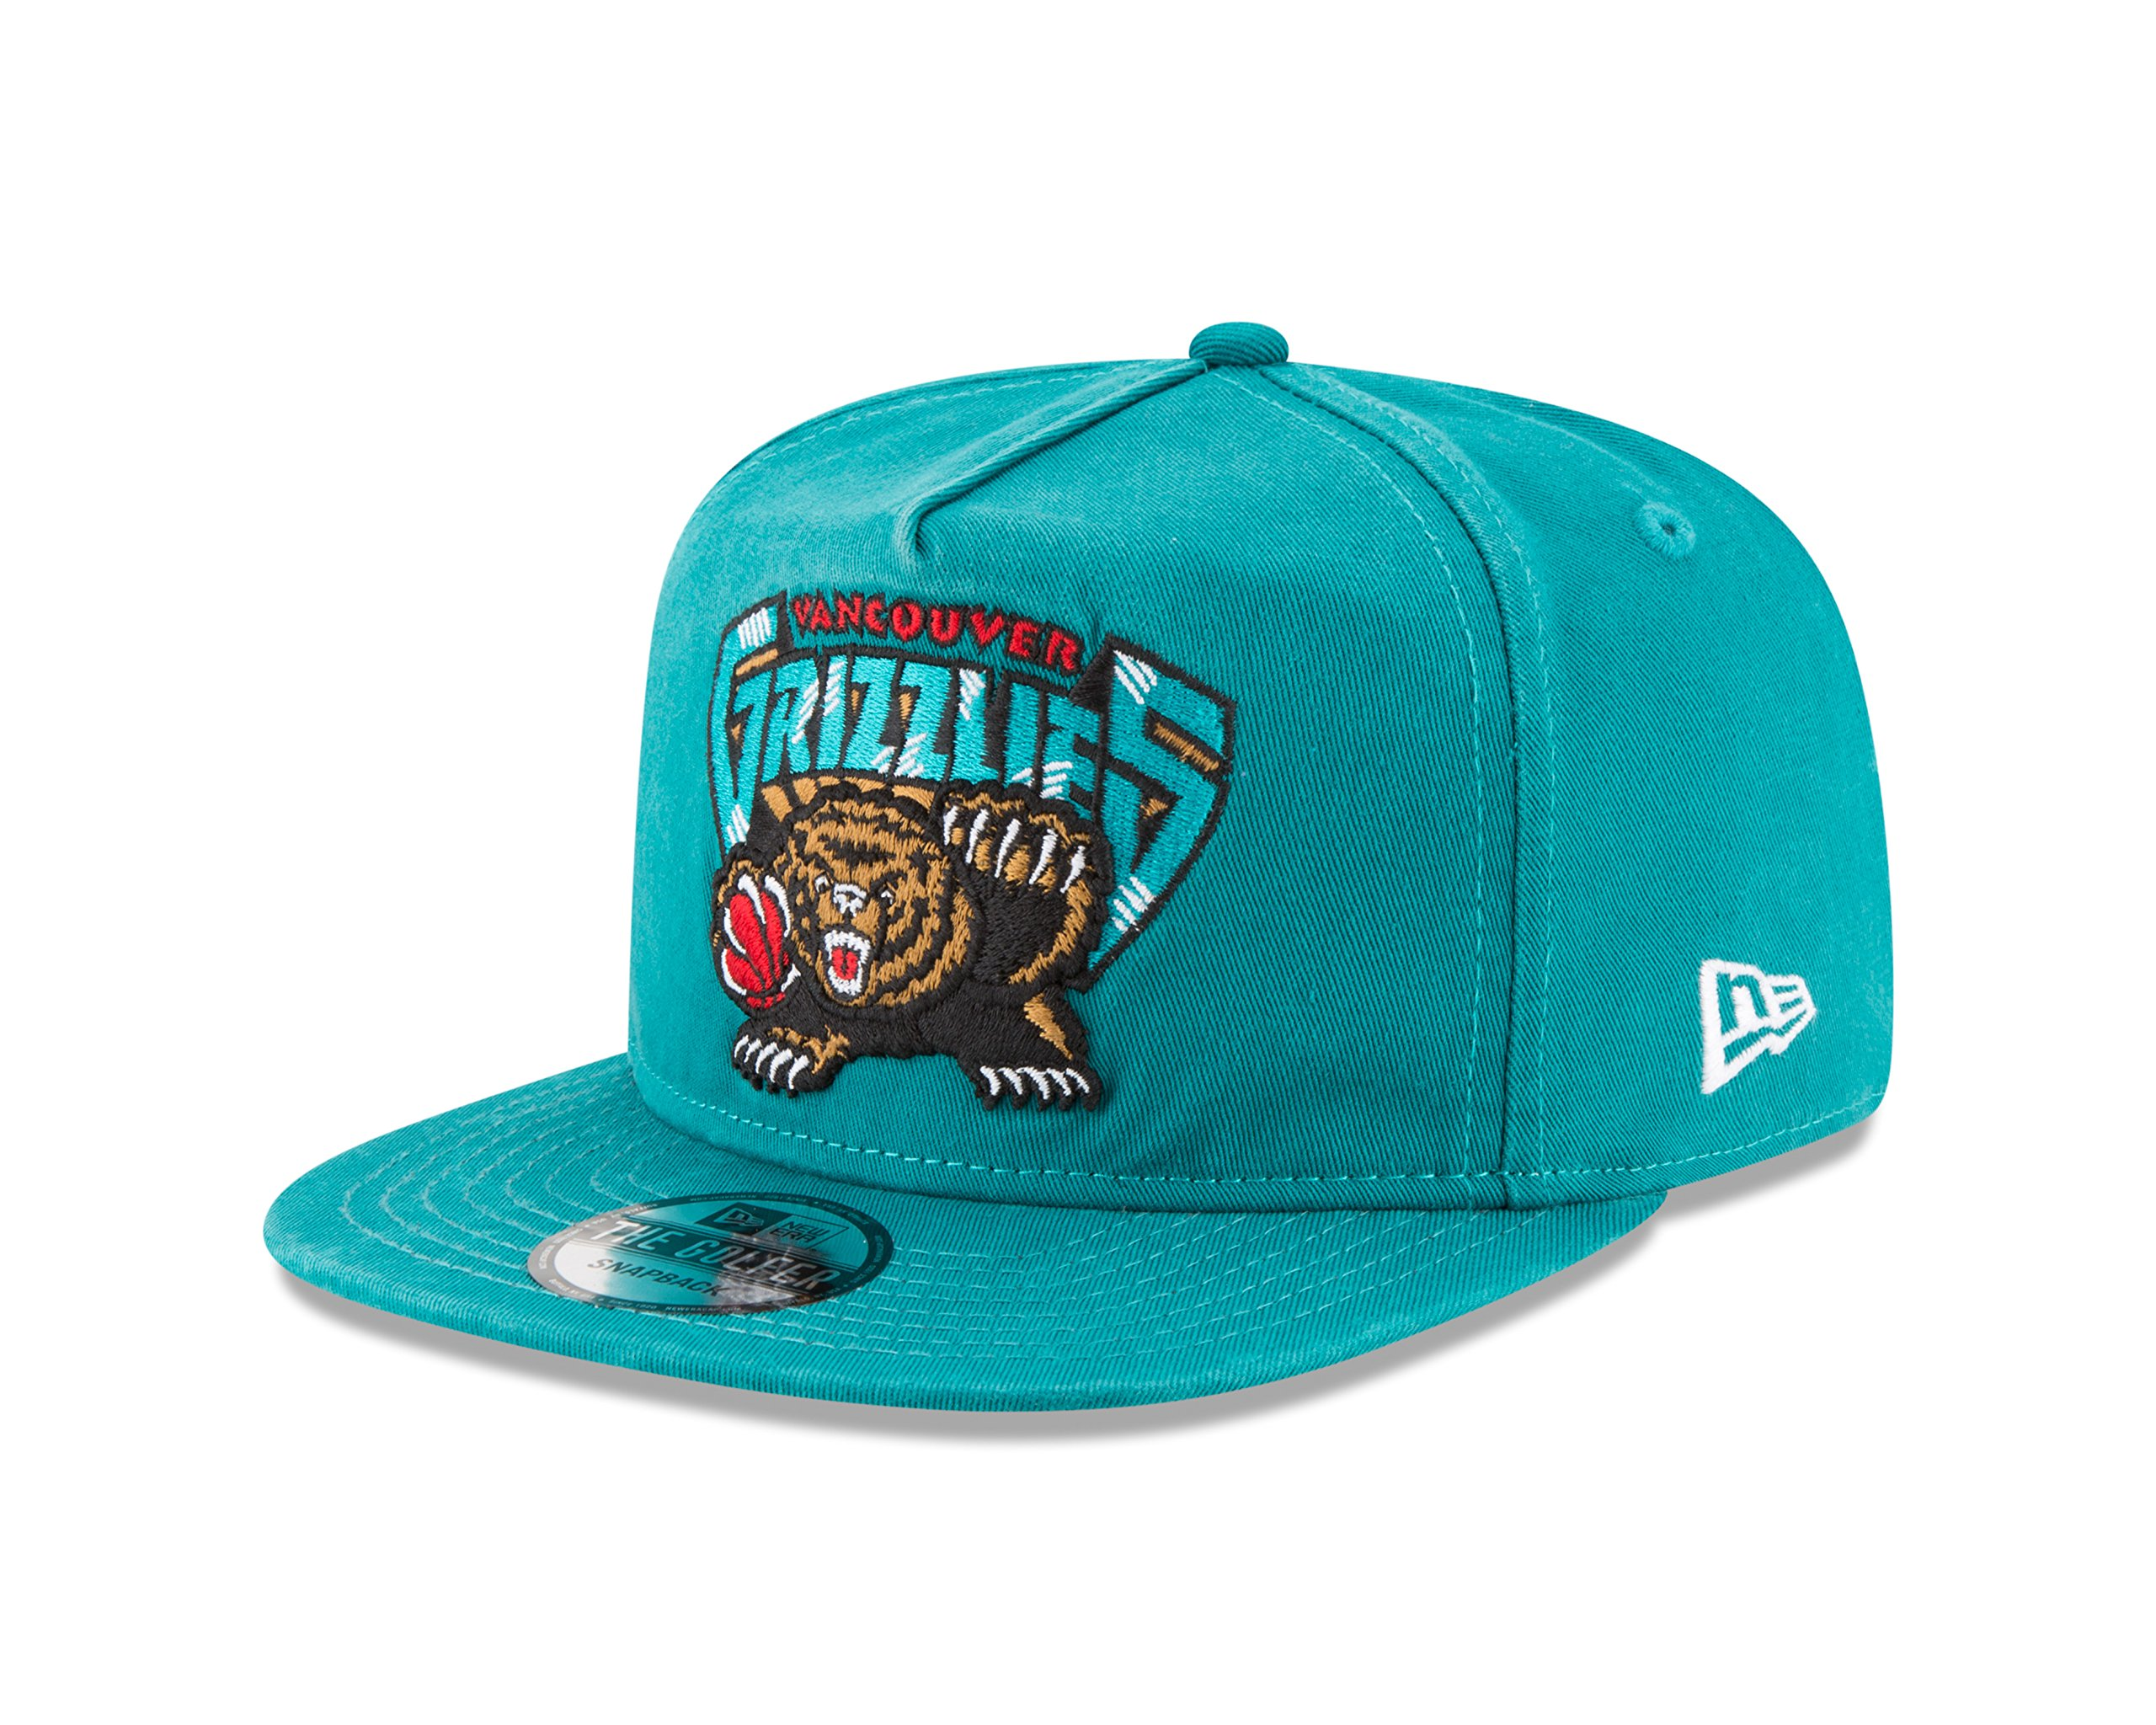 NBA VANCOUVER GRIZZLIES Hardwood By New Era A-Frame Snapback Cap ...